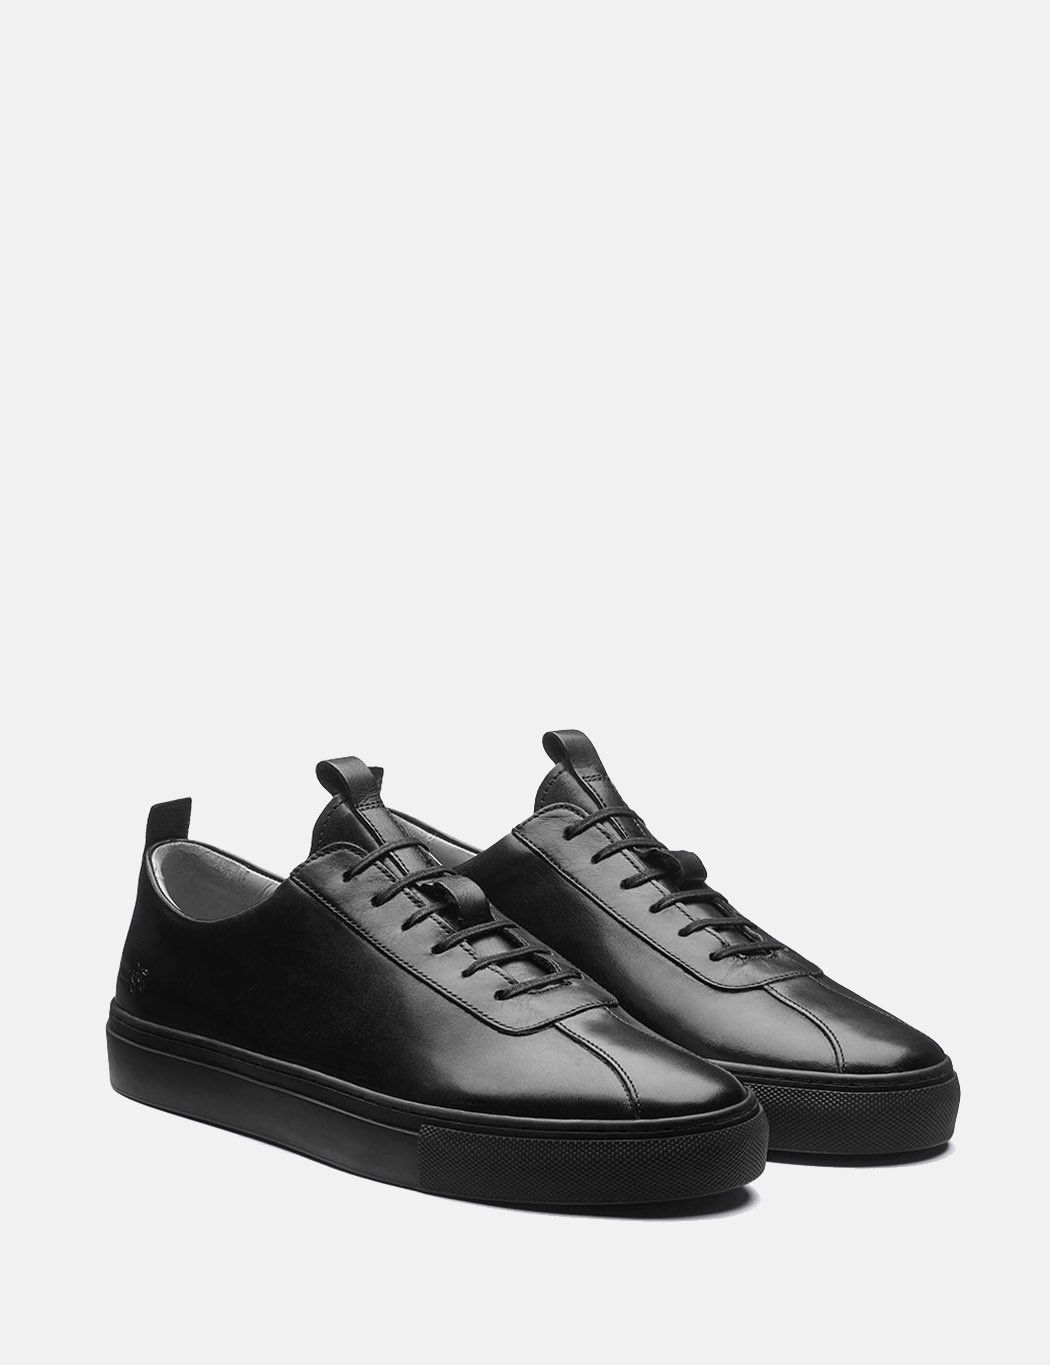 75c4a86fe76d Grenson Sneakers 1 (Leather) in Black Black in 2018